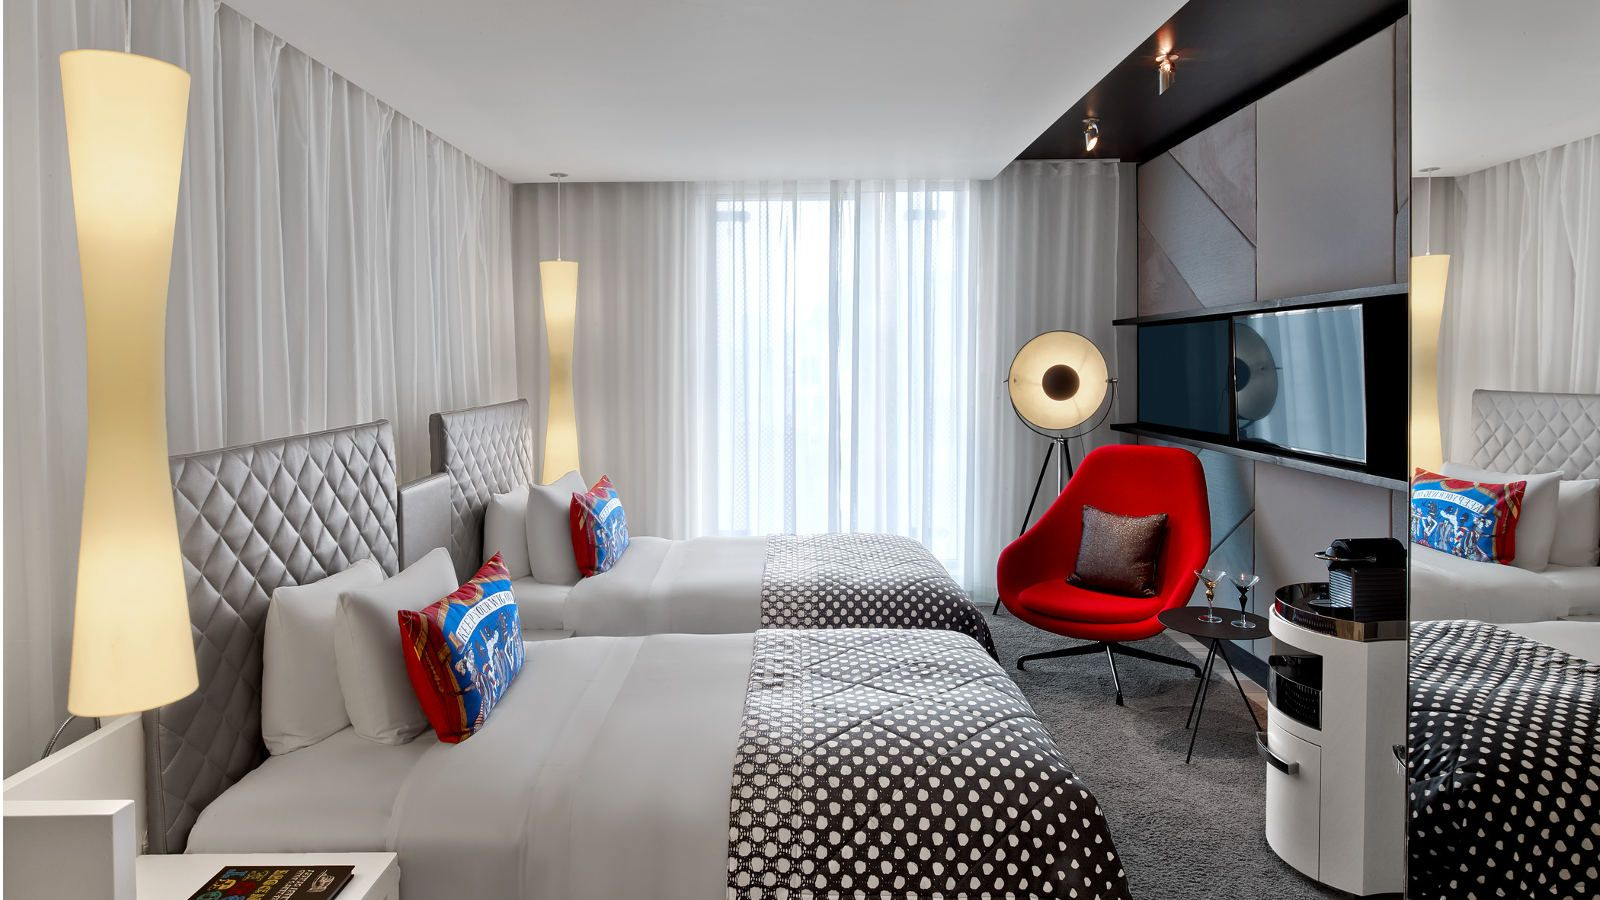 Leicester square accommodation rooms and suites at w london for W hotel bedroom designs